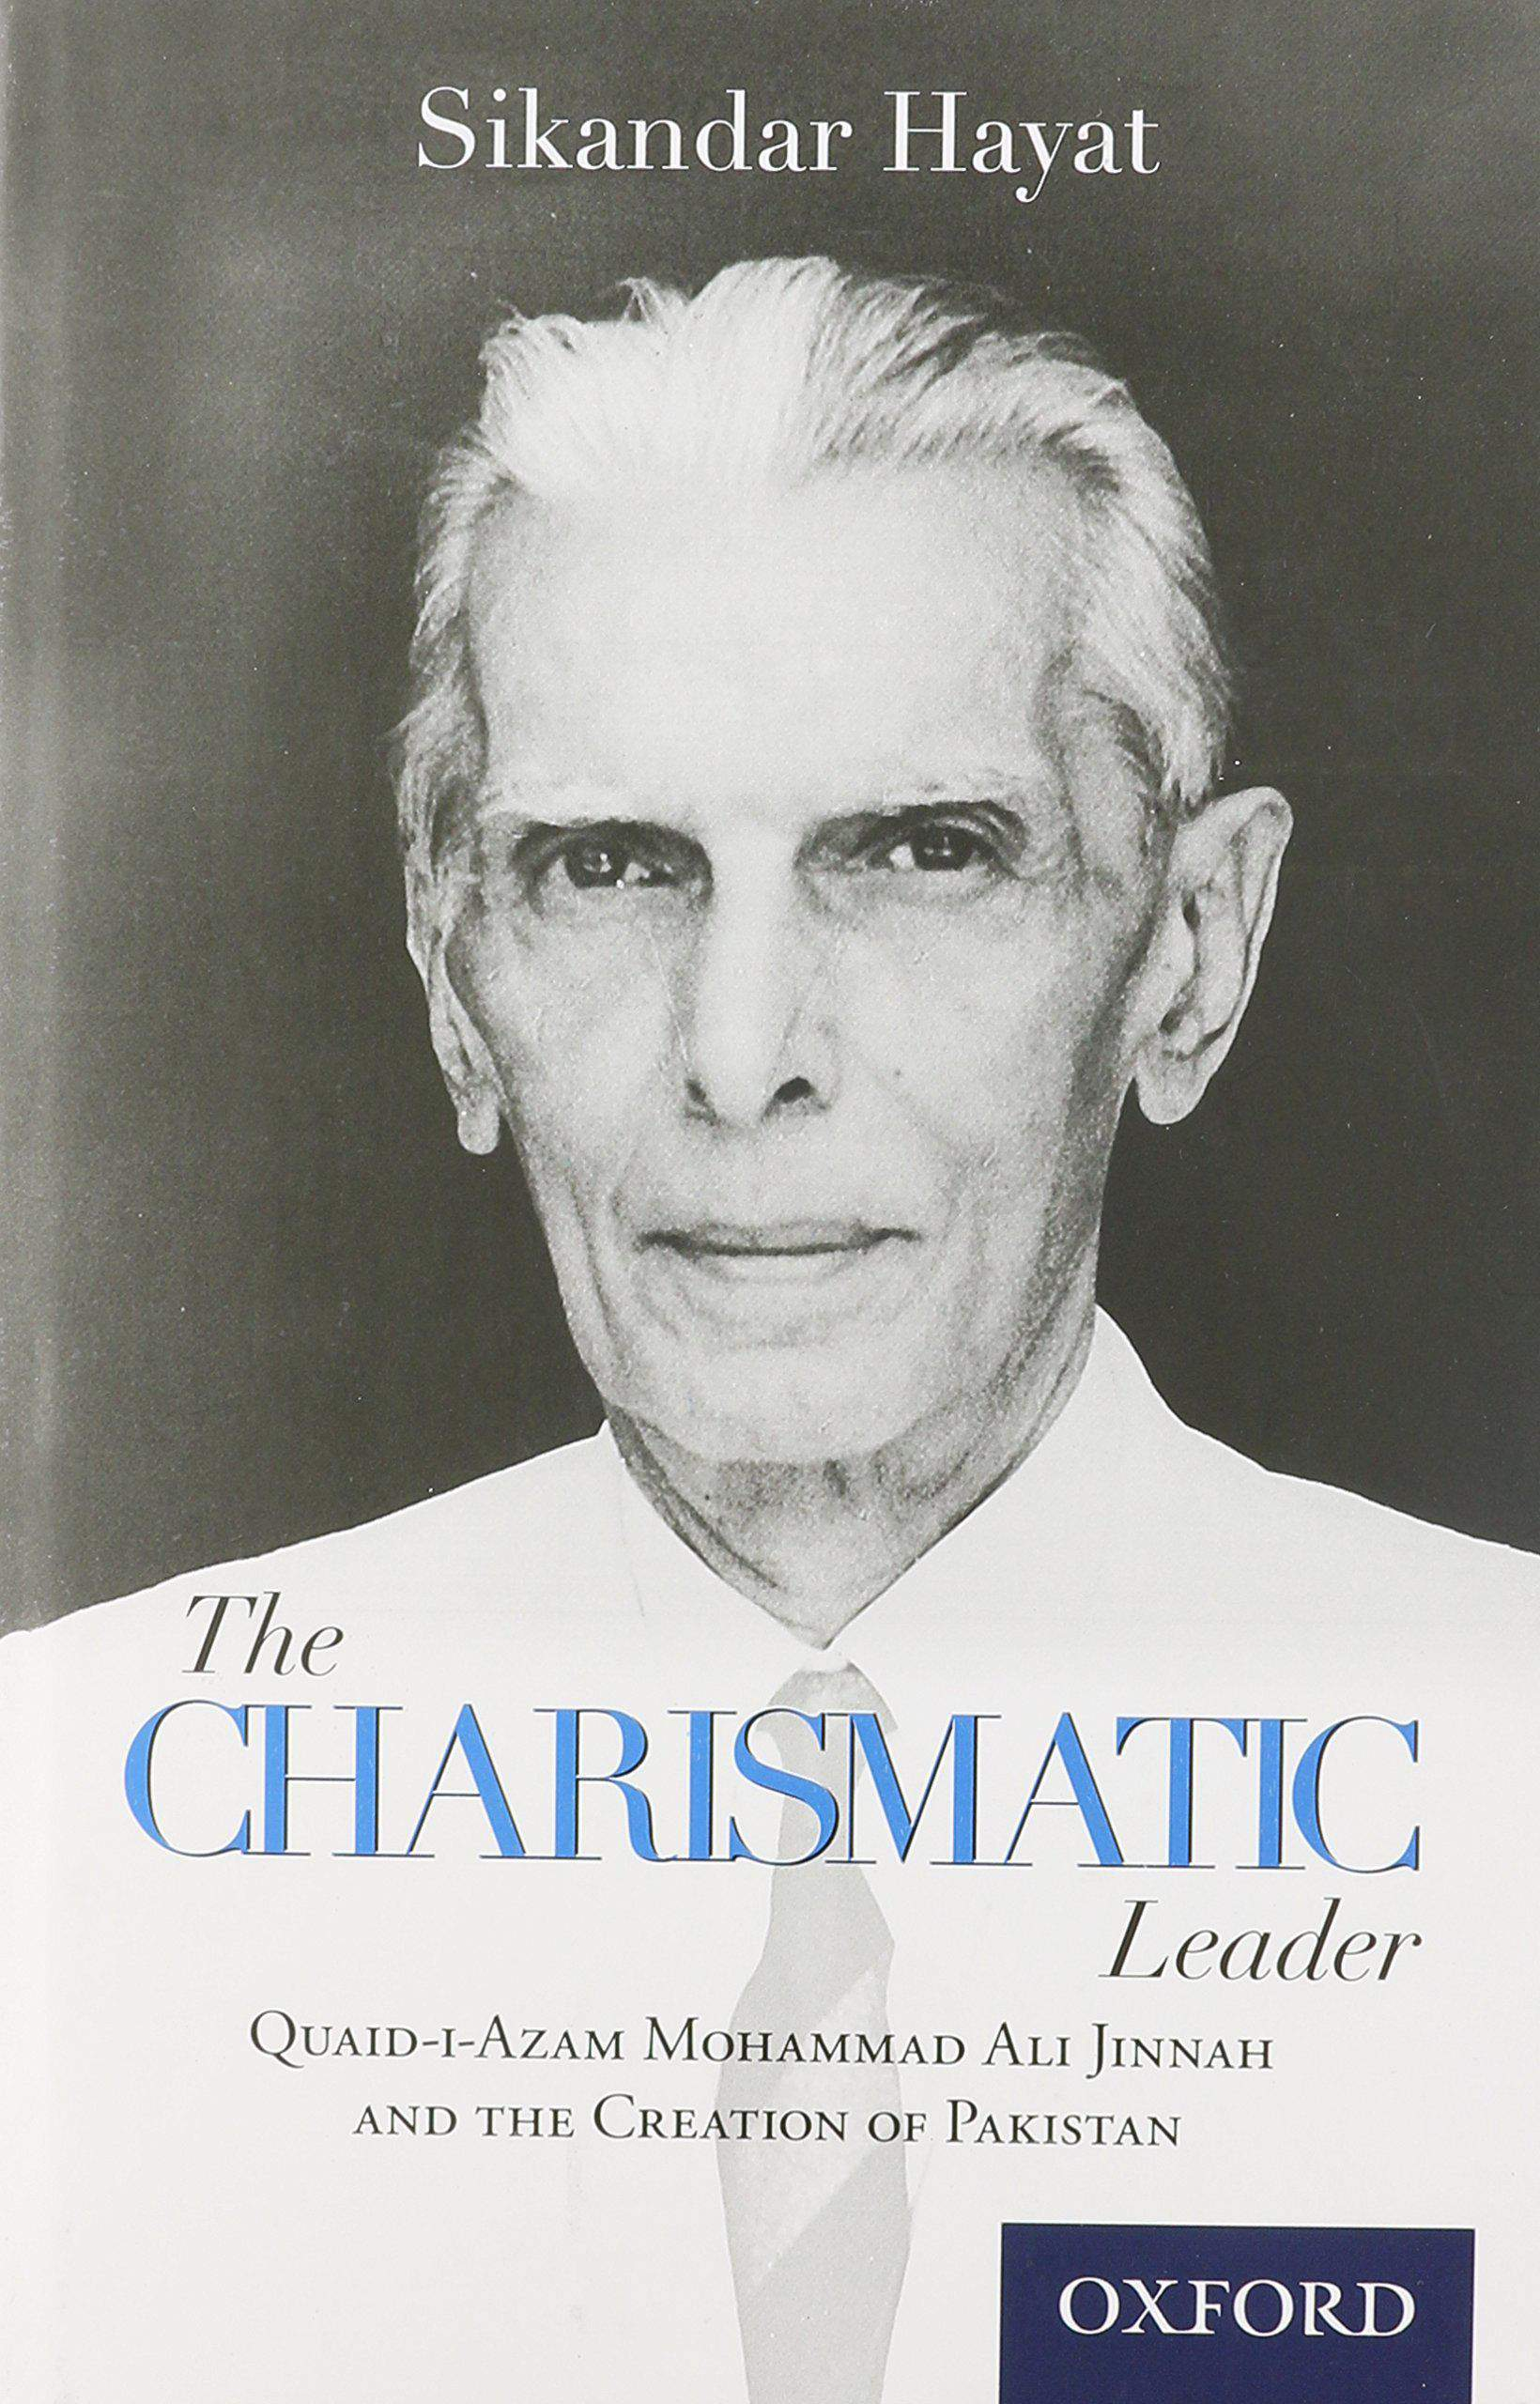 The Charismatic Leader QuaidiAzam Mohaad Ali Jinnah and the Creation of Pakistan